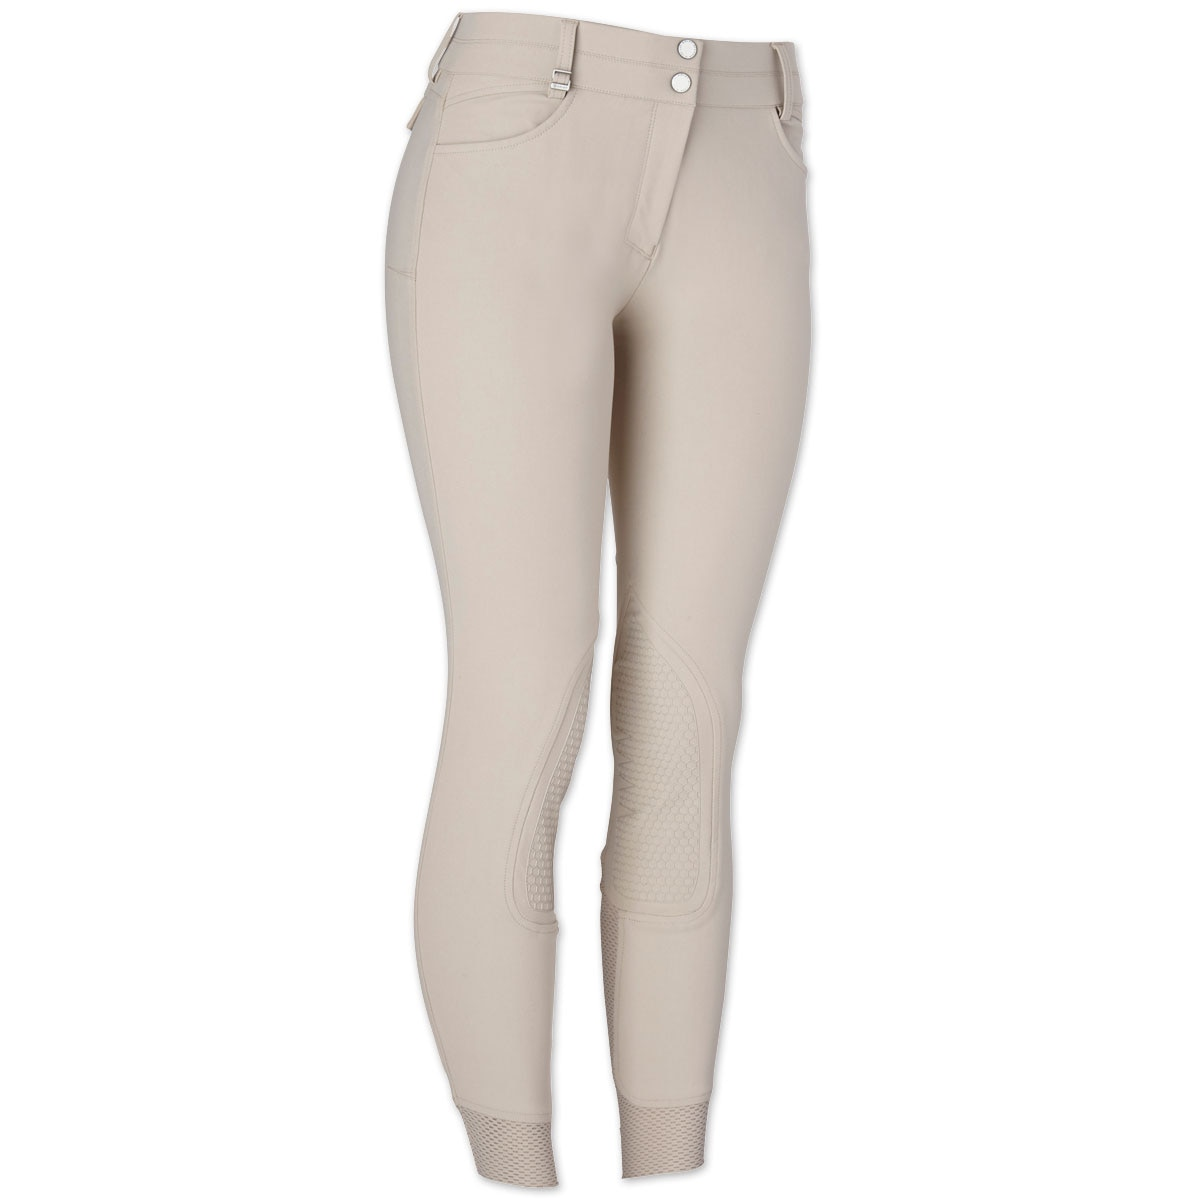 Ariat Olympia Arcadia Knee Patch Breech